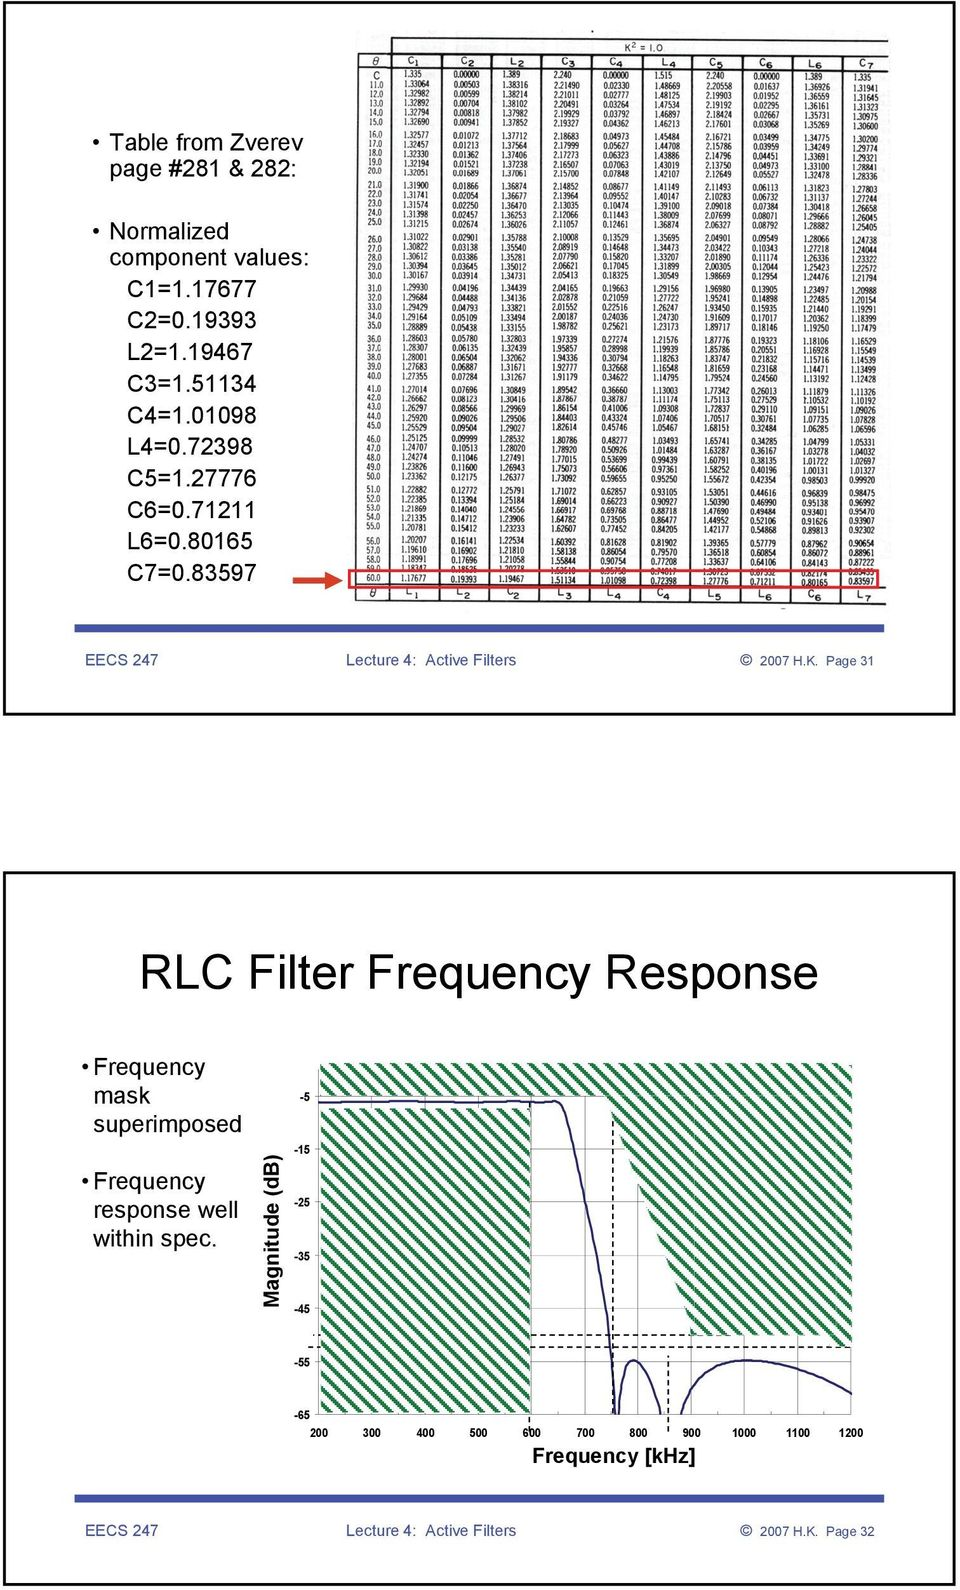 Pge 3 C Filter Frequency Response Frequency msk superimposed Frequency response well within spec.